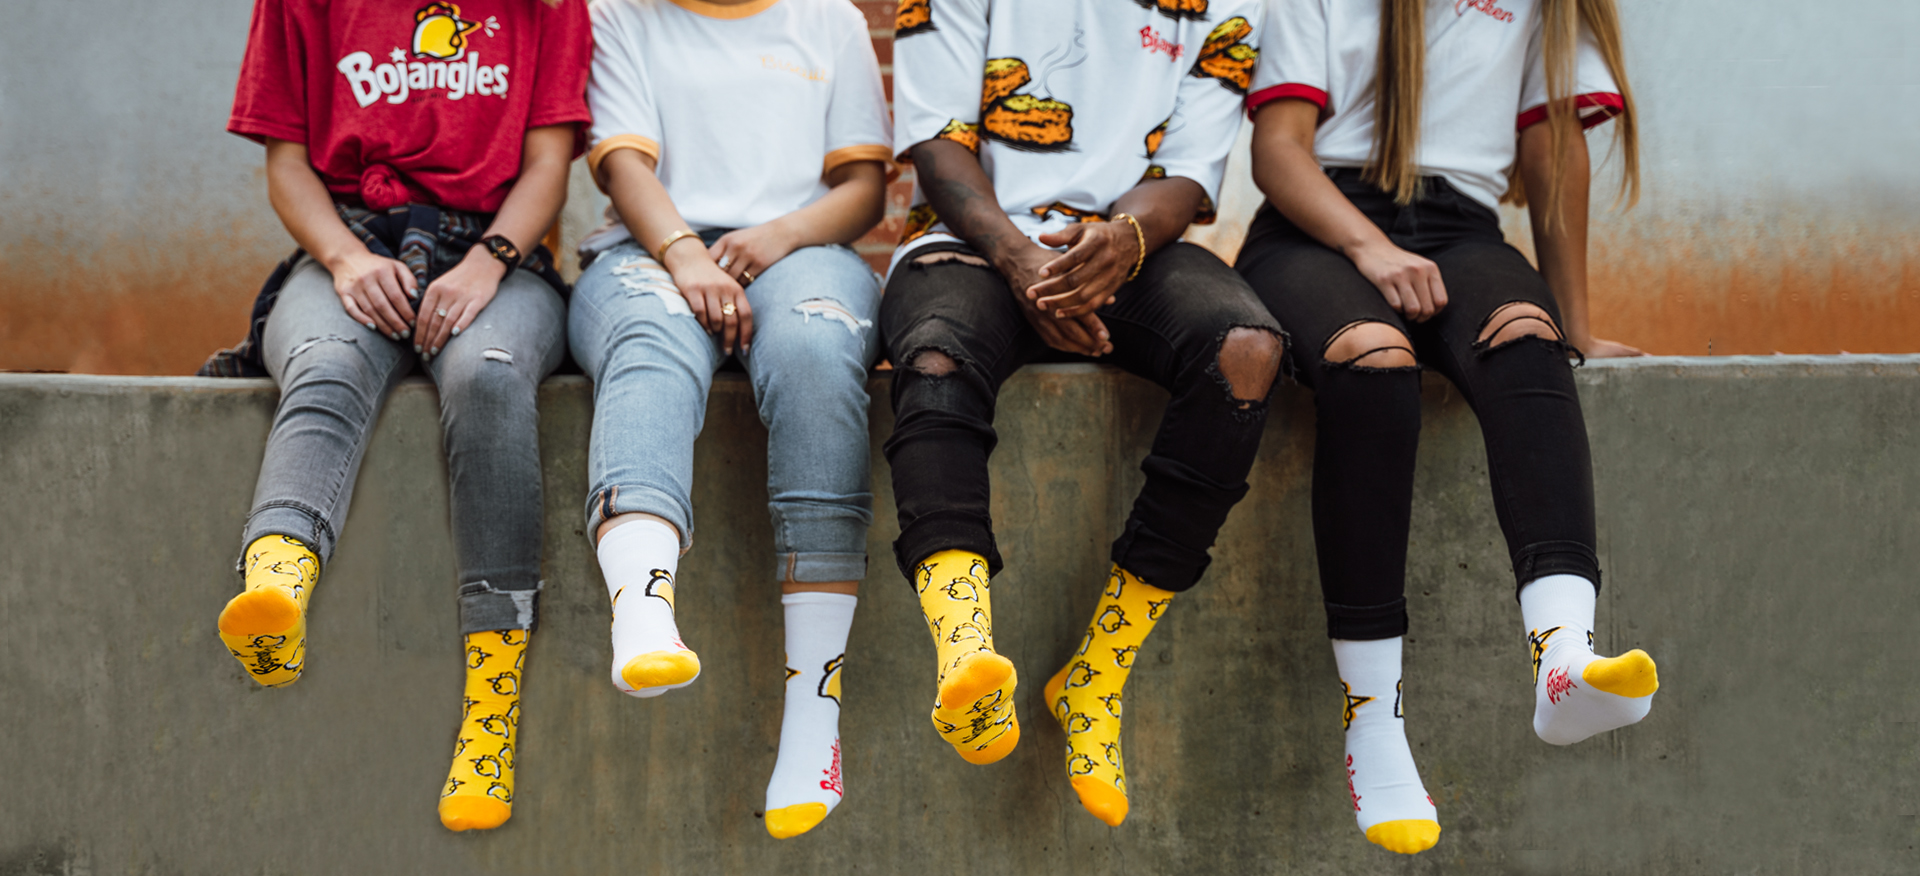 Group of people on a wall wearing variety of Bojangles shirts and each wearing dress or crew socks swinging feet